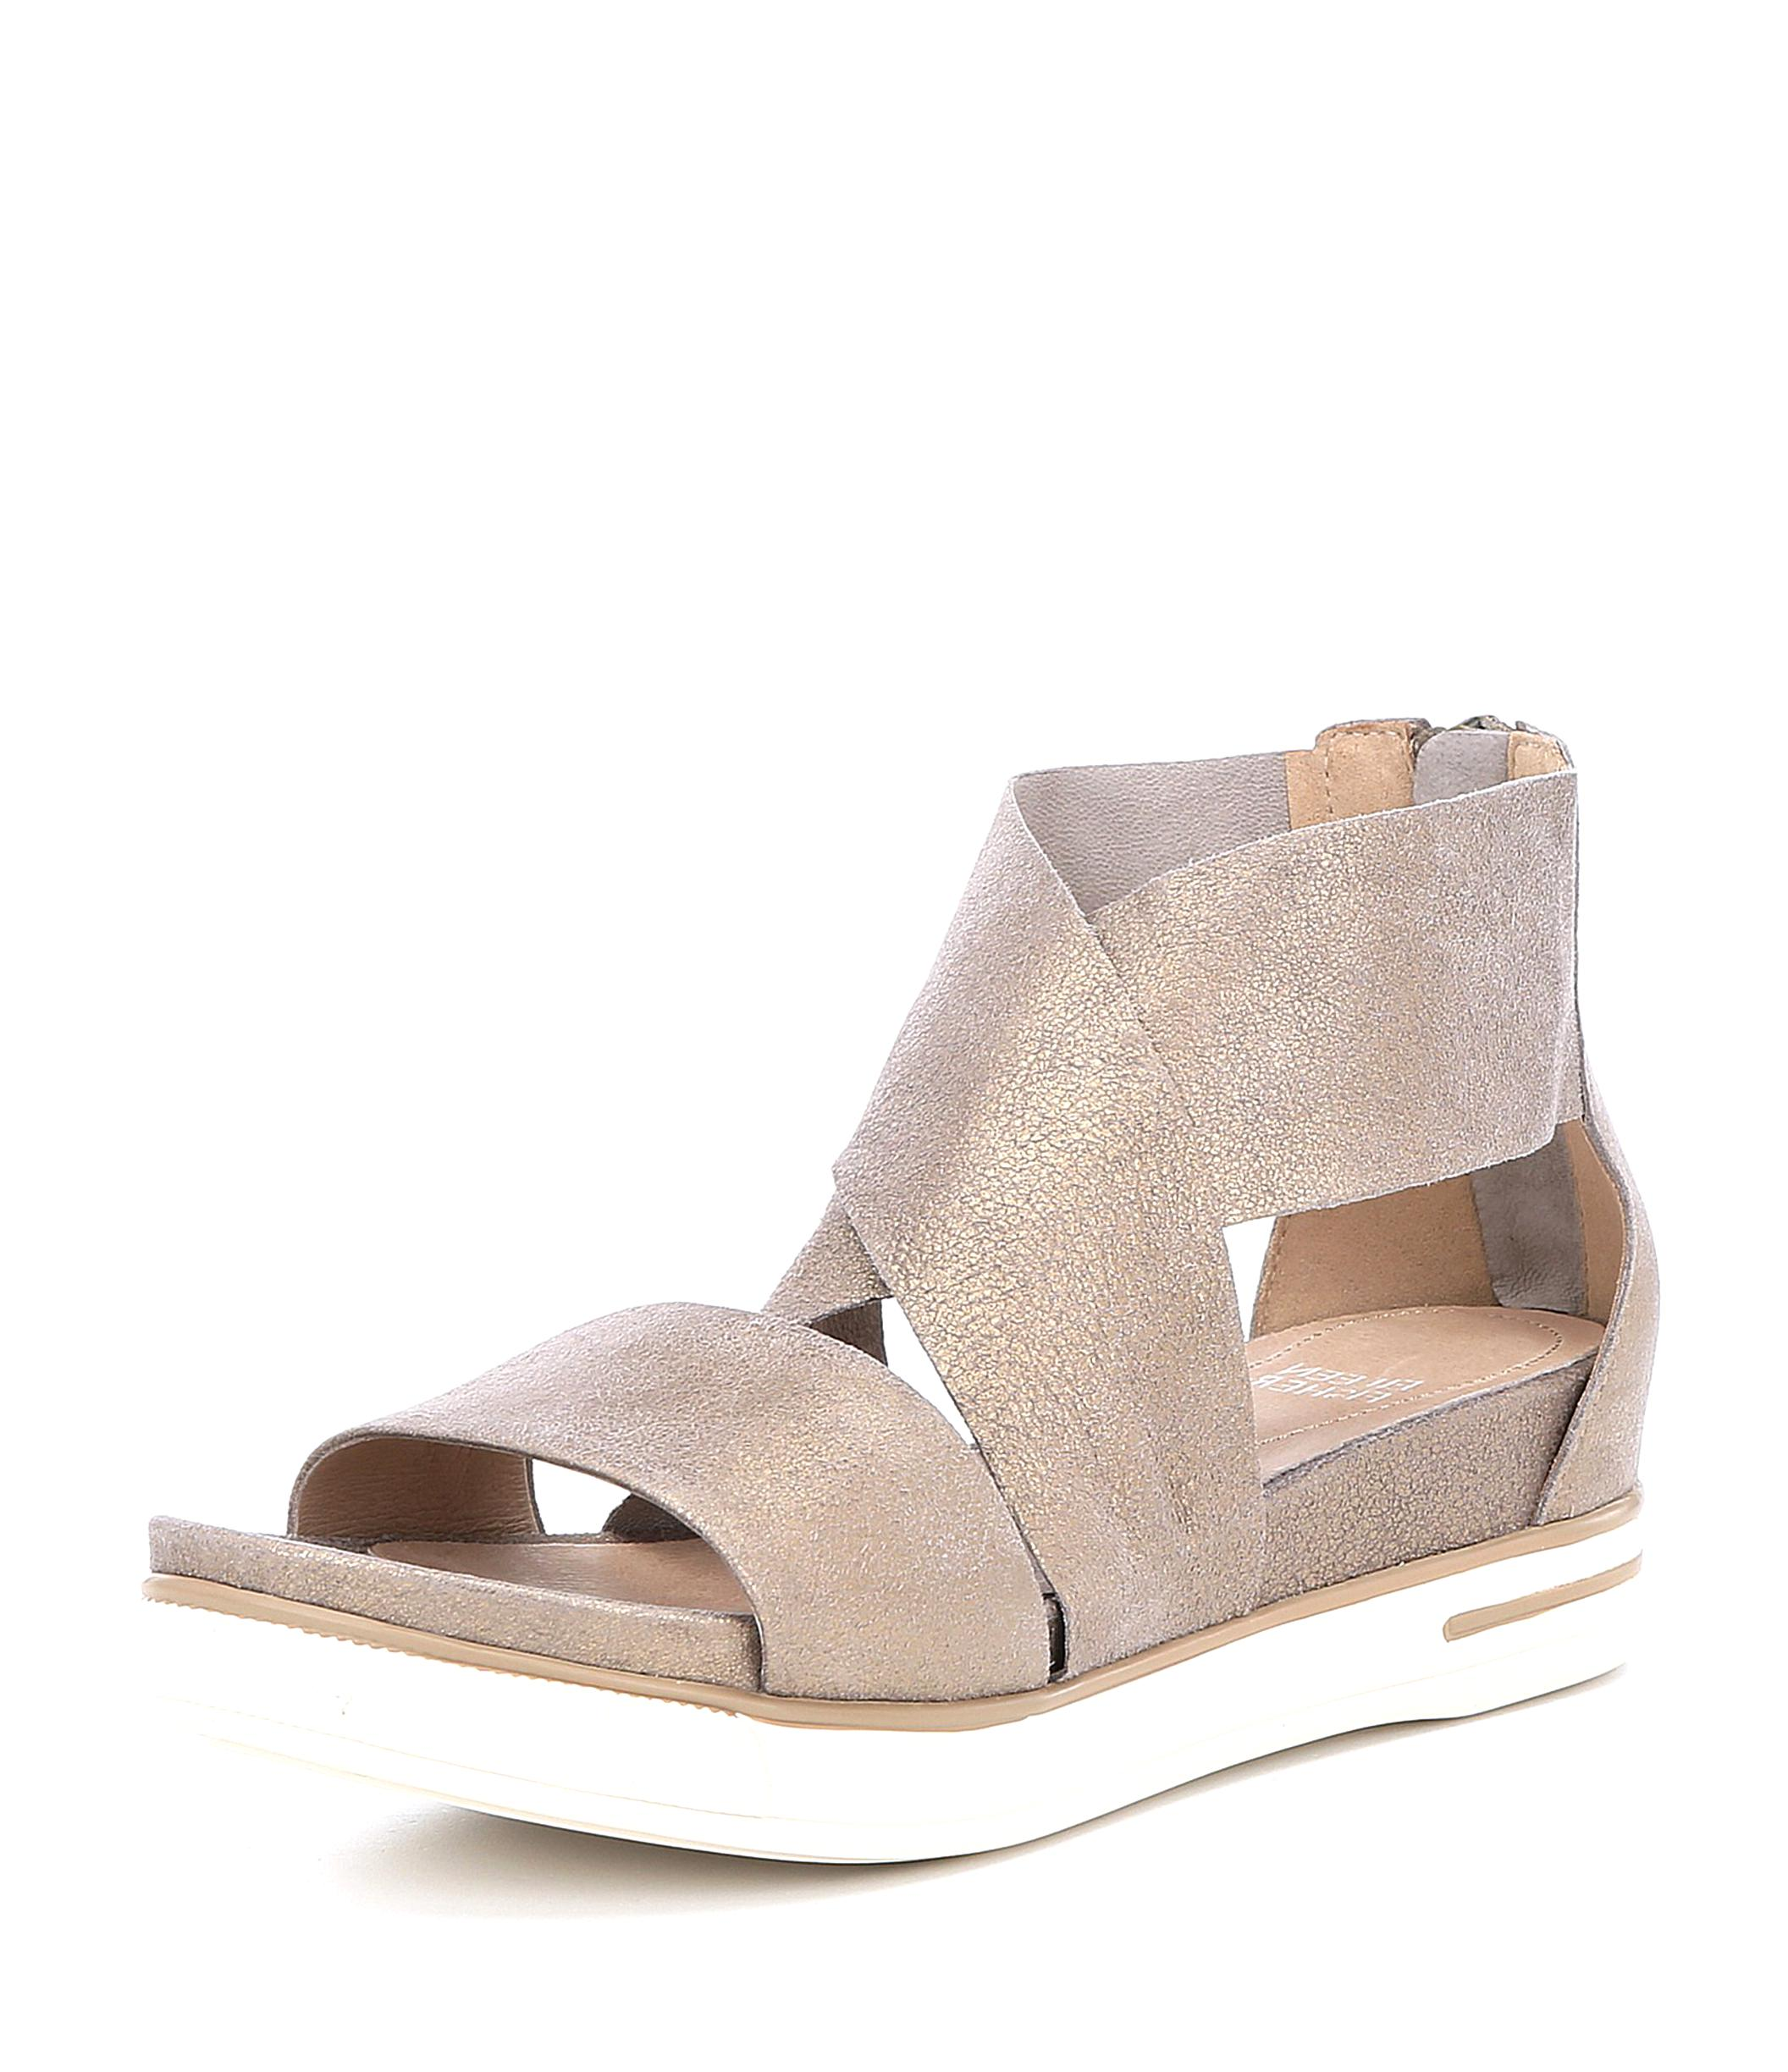 eileen fisher shoes sale